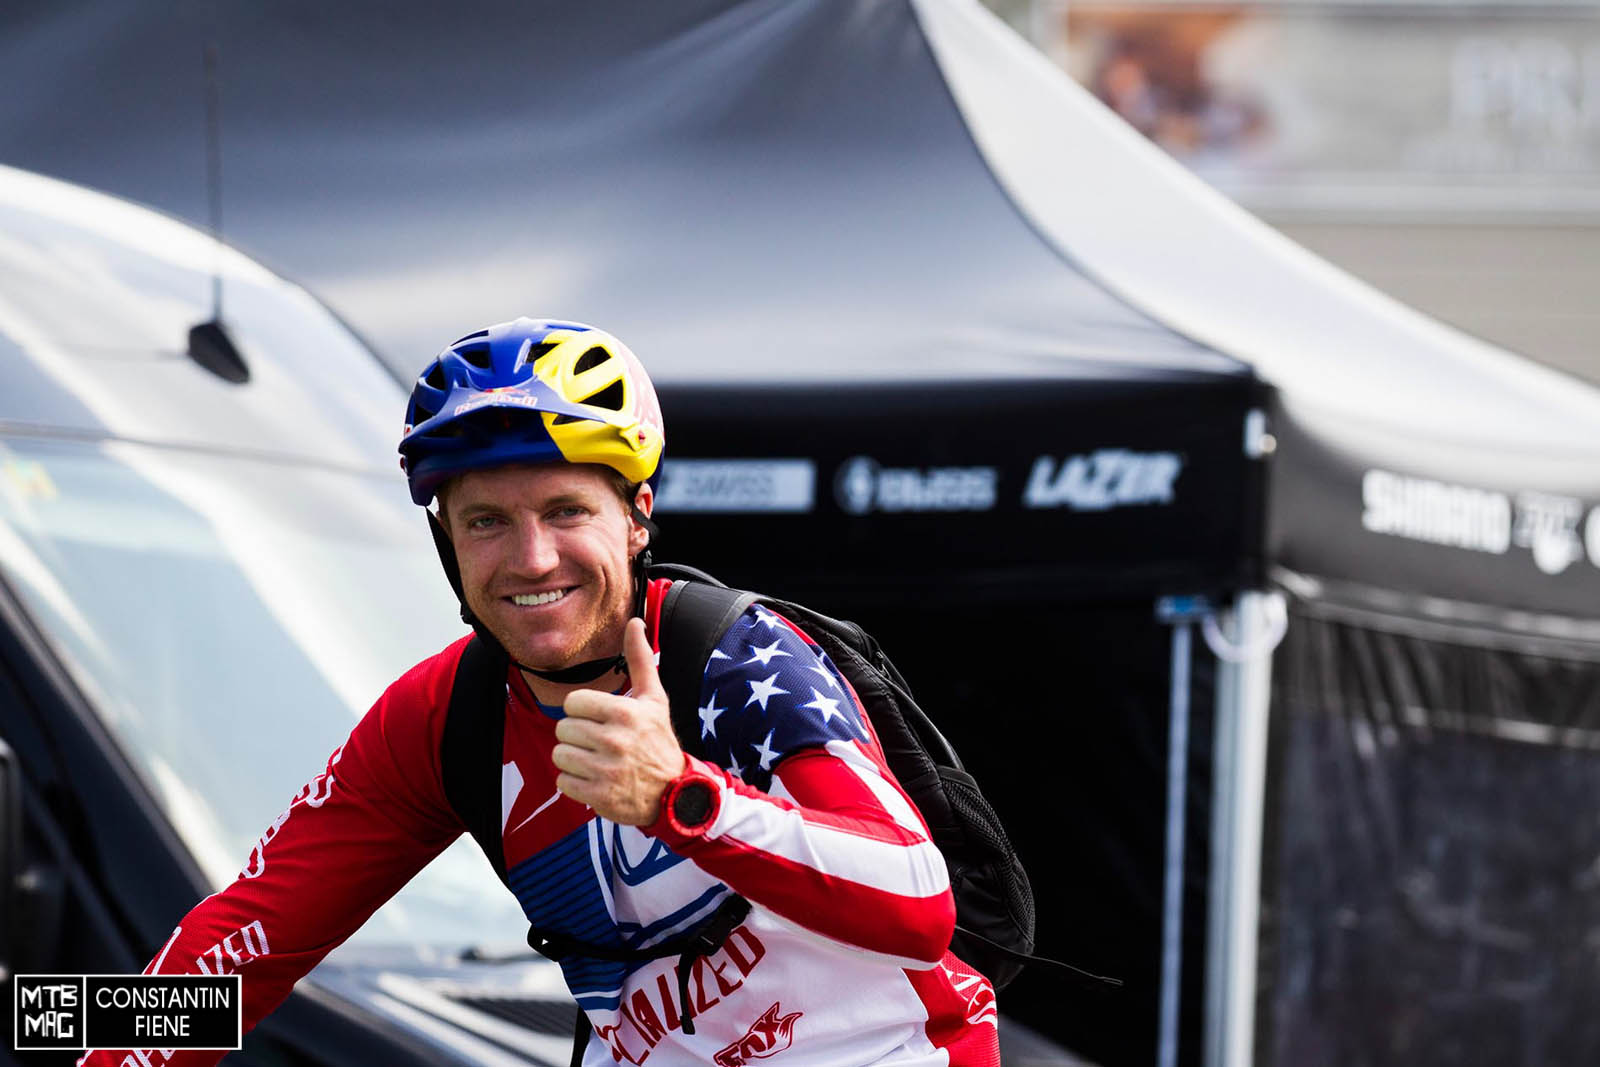 Aaron Gwin is all smiles.  We think he probably took his qualifier easy.  Could the savage american repeat Windham 2012 and win on 4th of July weekend?